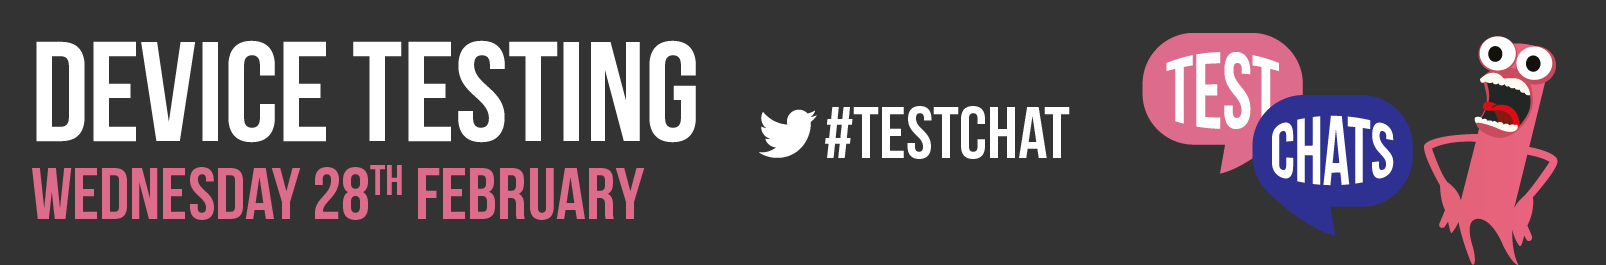 Test chats   device testingbanner